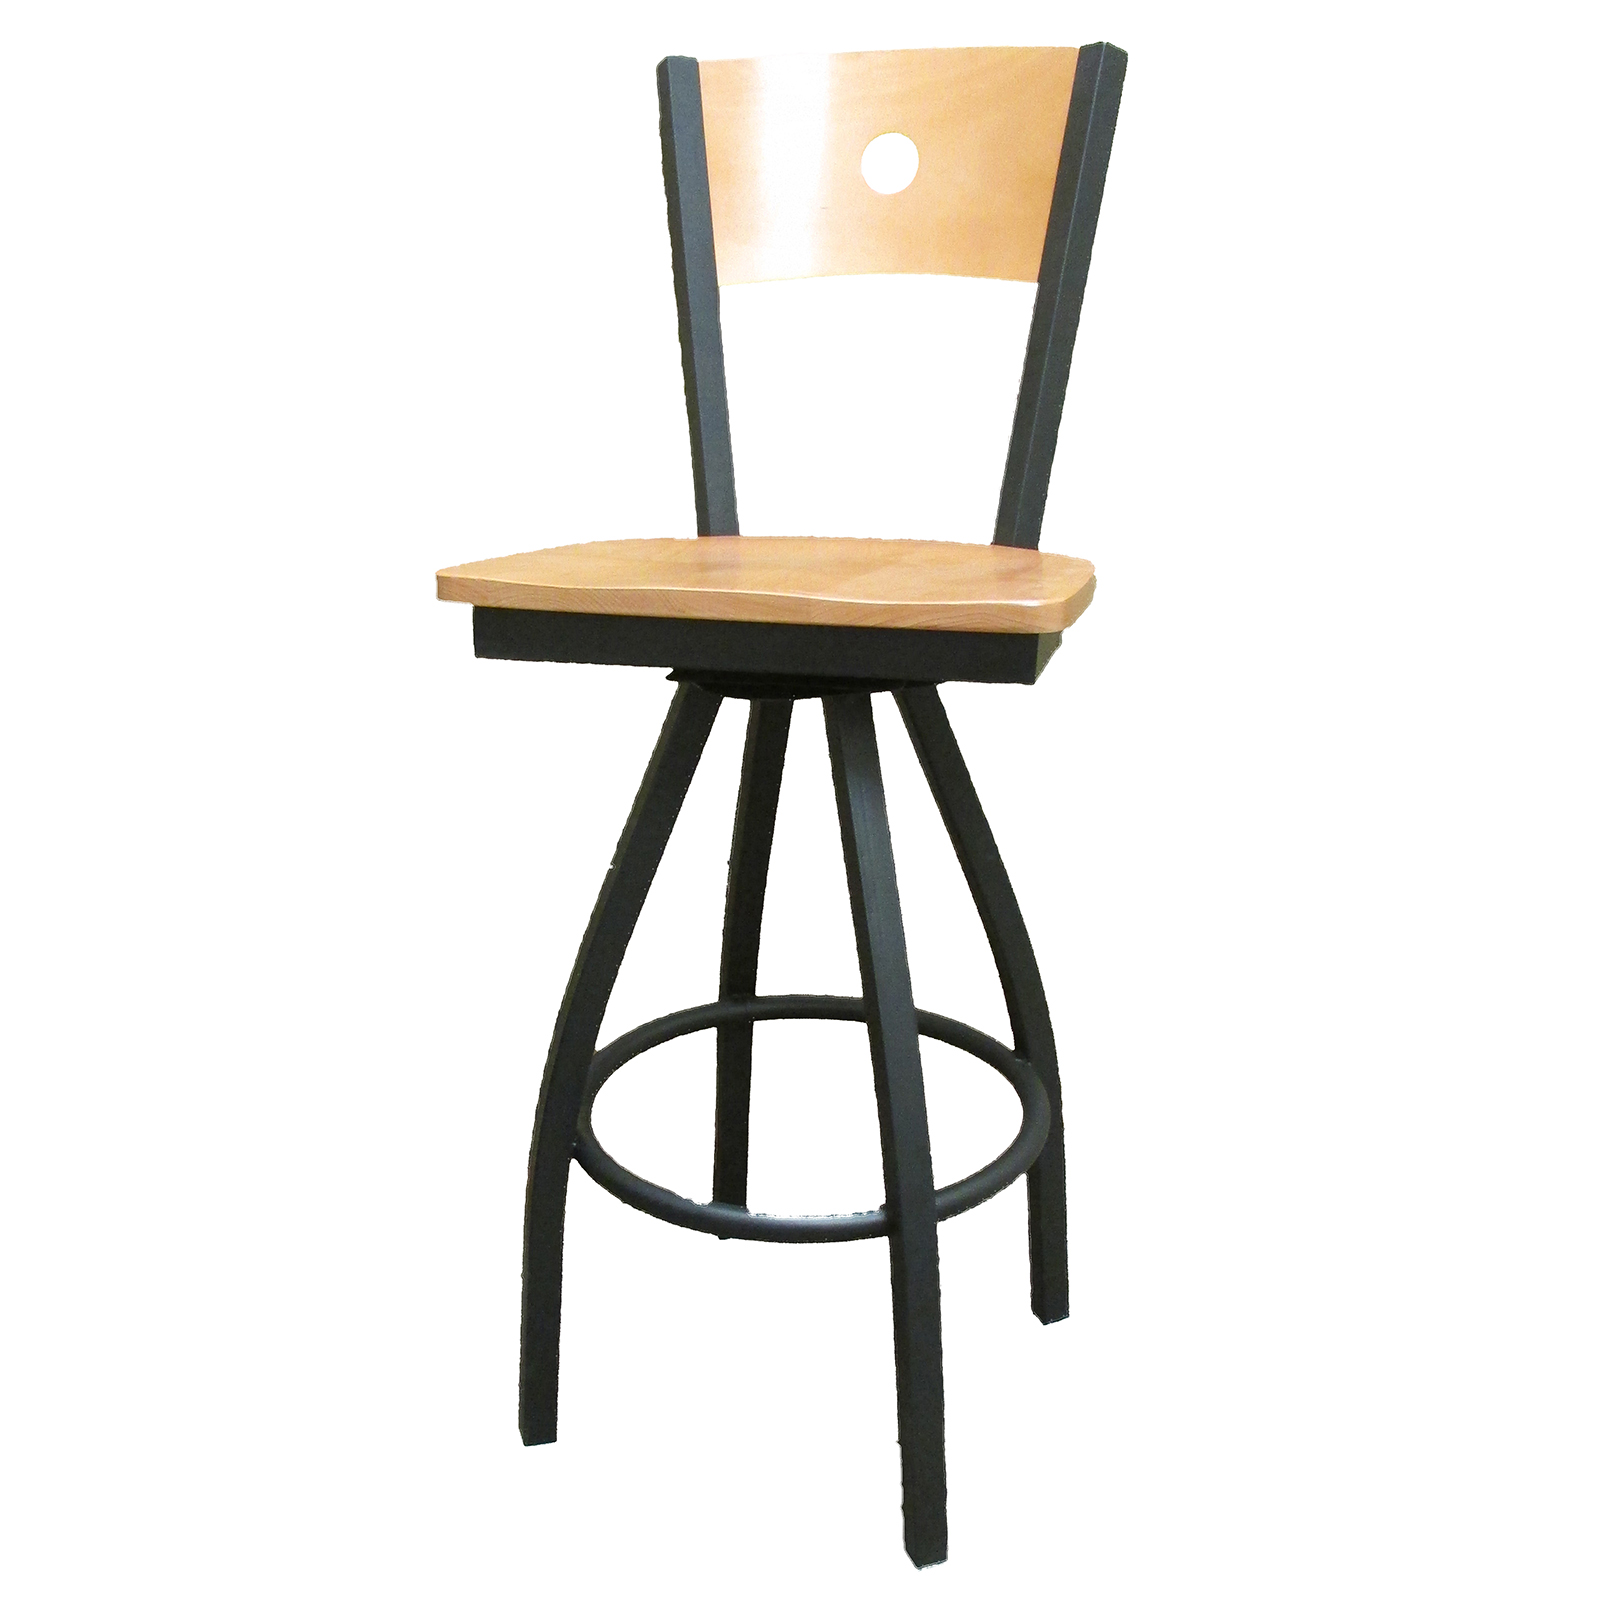 Oak Street SL2150-1S-B bar stool, swivel, indoor